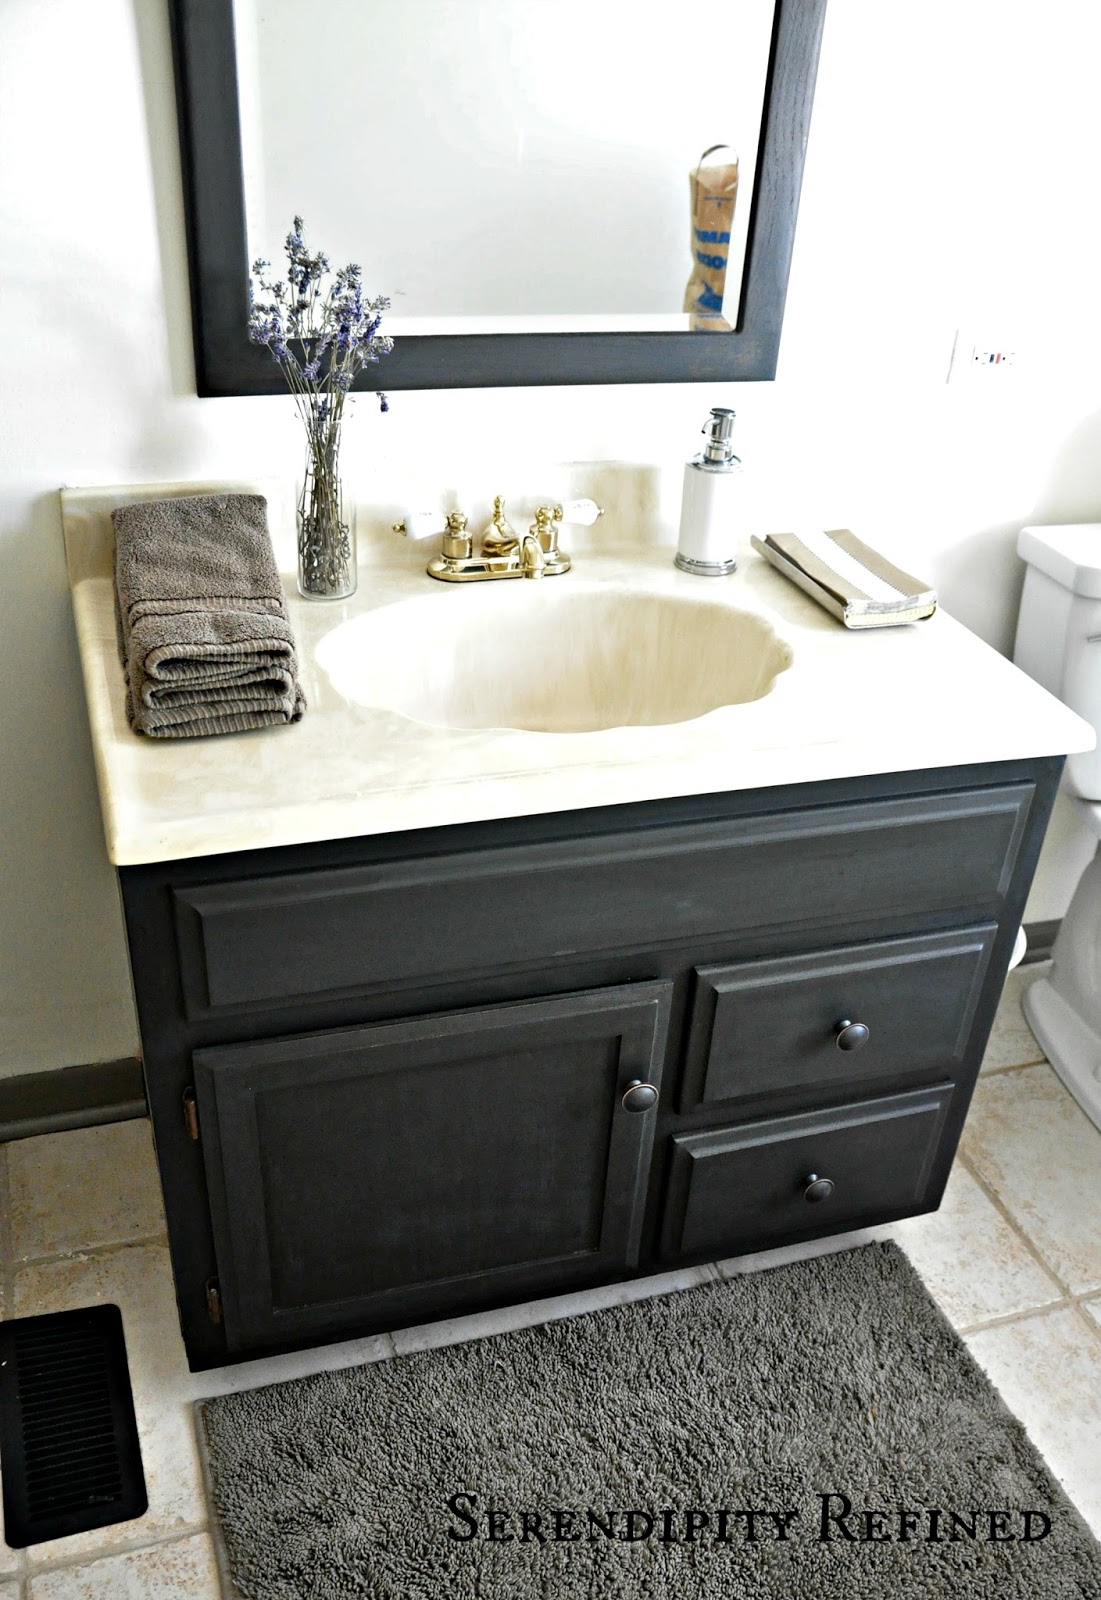 Vanity Light Update : Serendipity Refined Blog: How to Update Oak and Brass Bathroom Fixtures With Spray Paint and ...